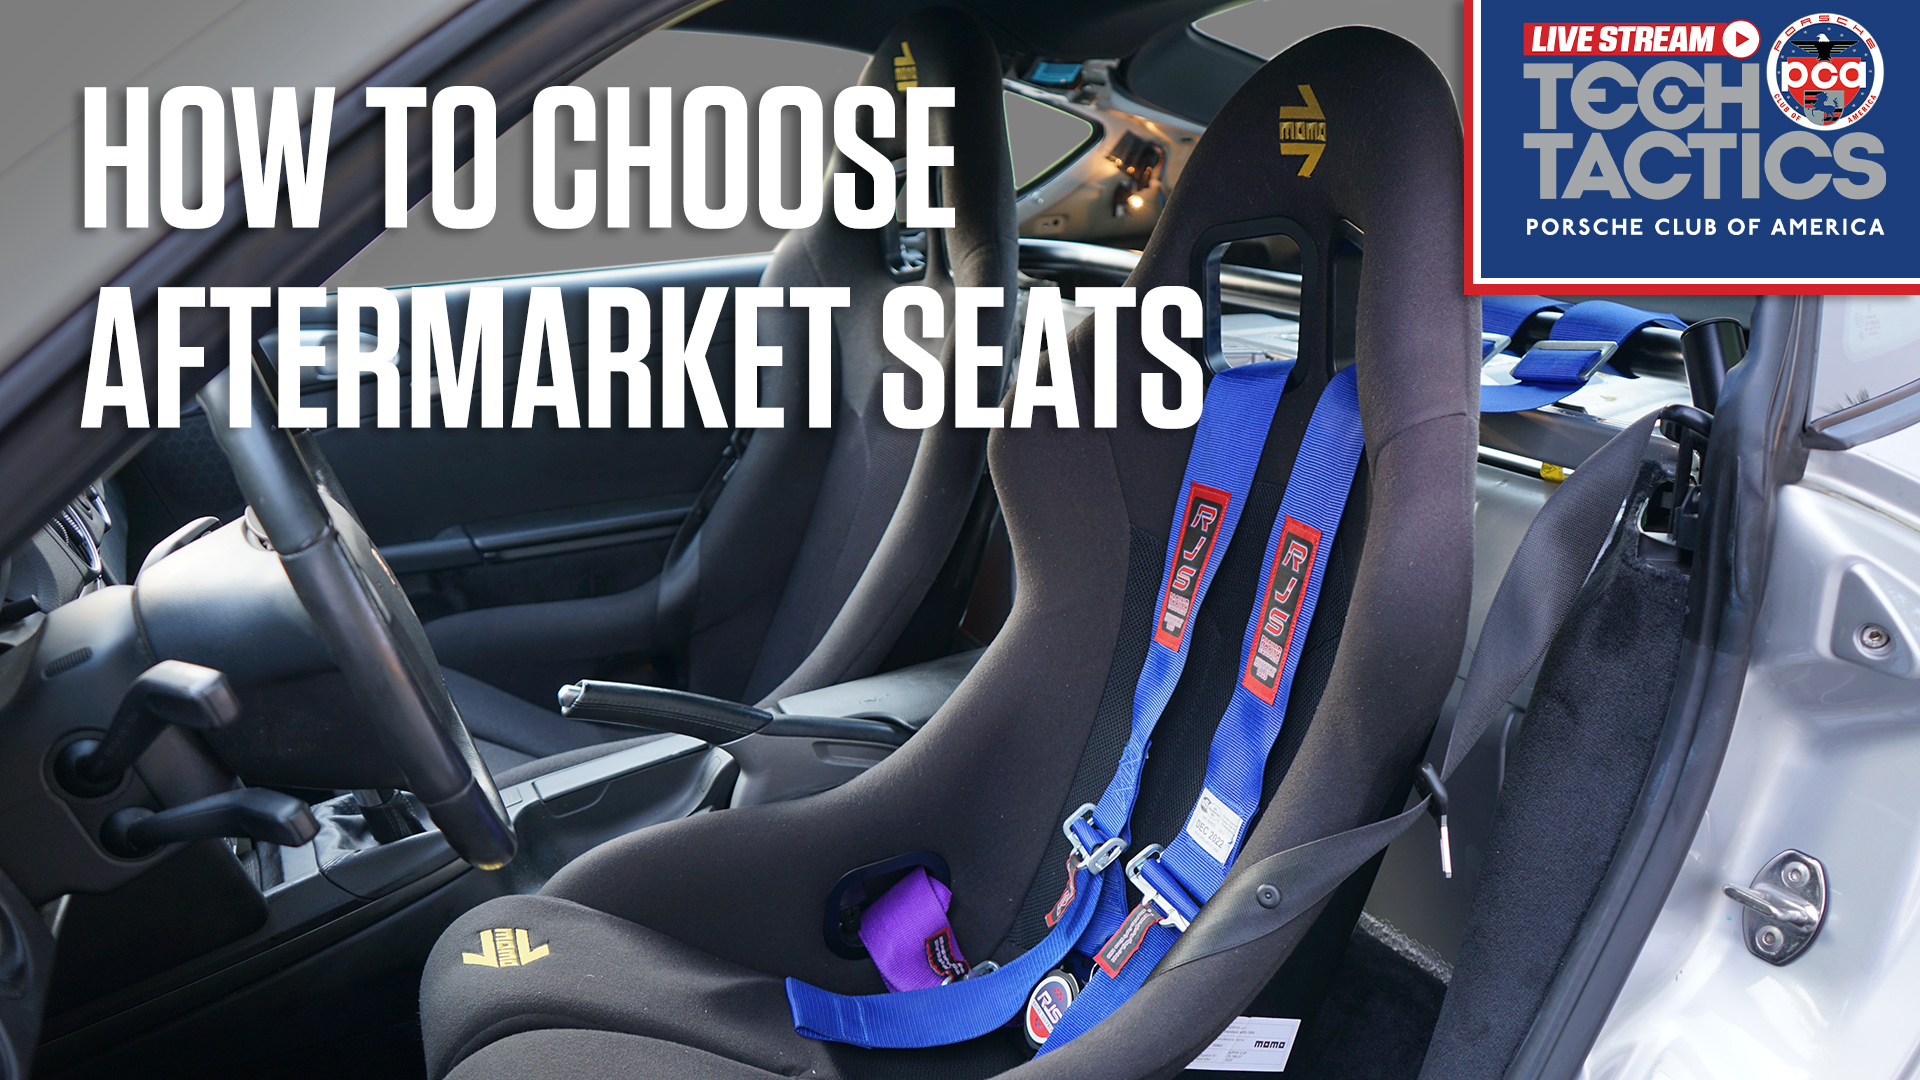 What to look for when purchasing aftermarket seats for your Porsche   Tech Tactics Live